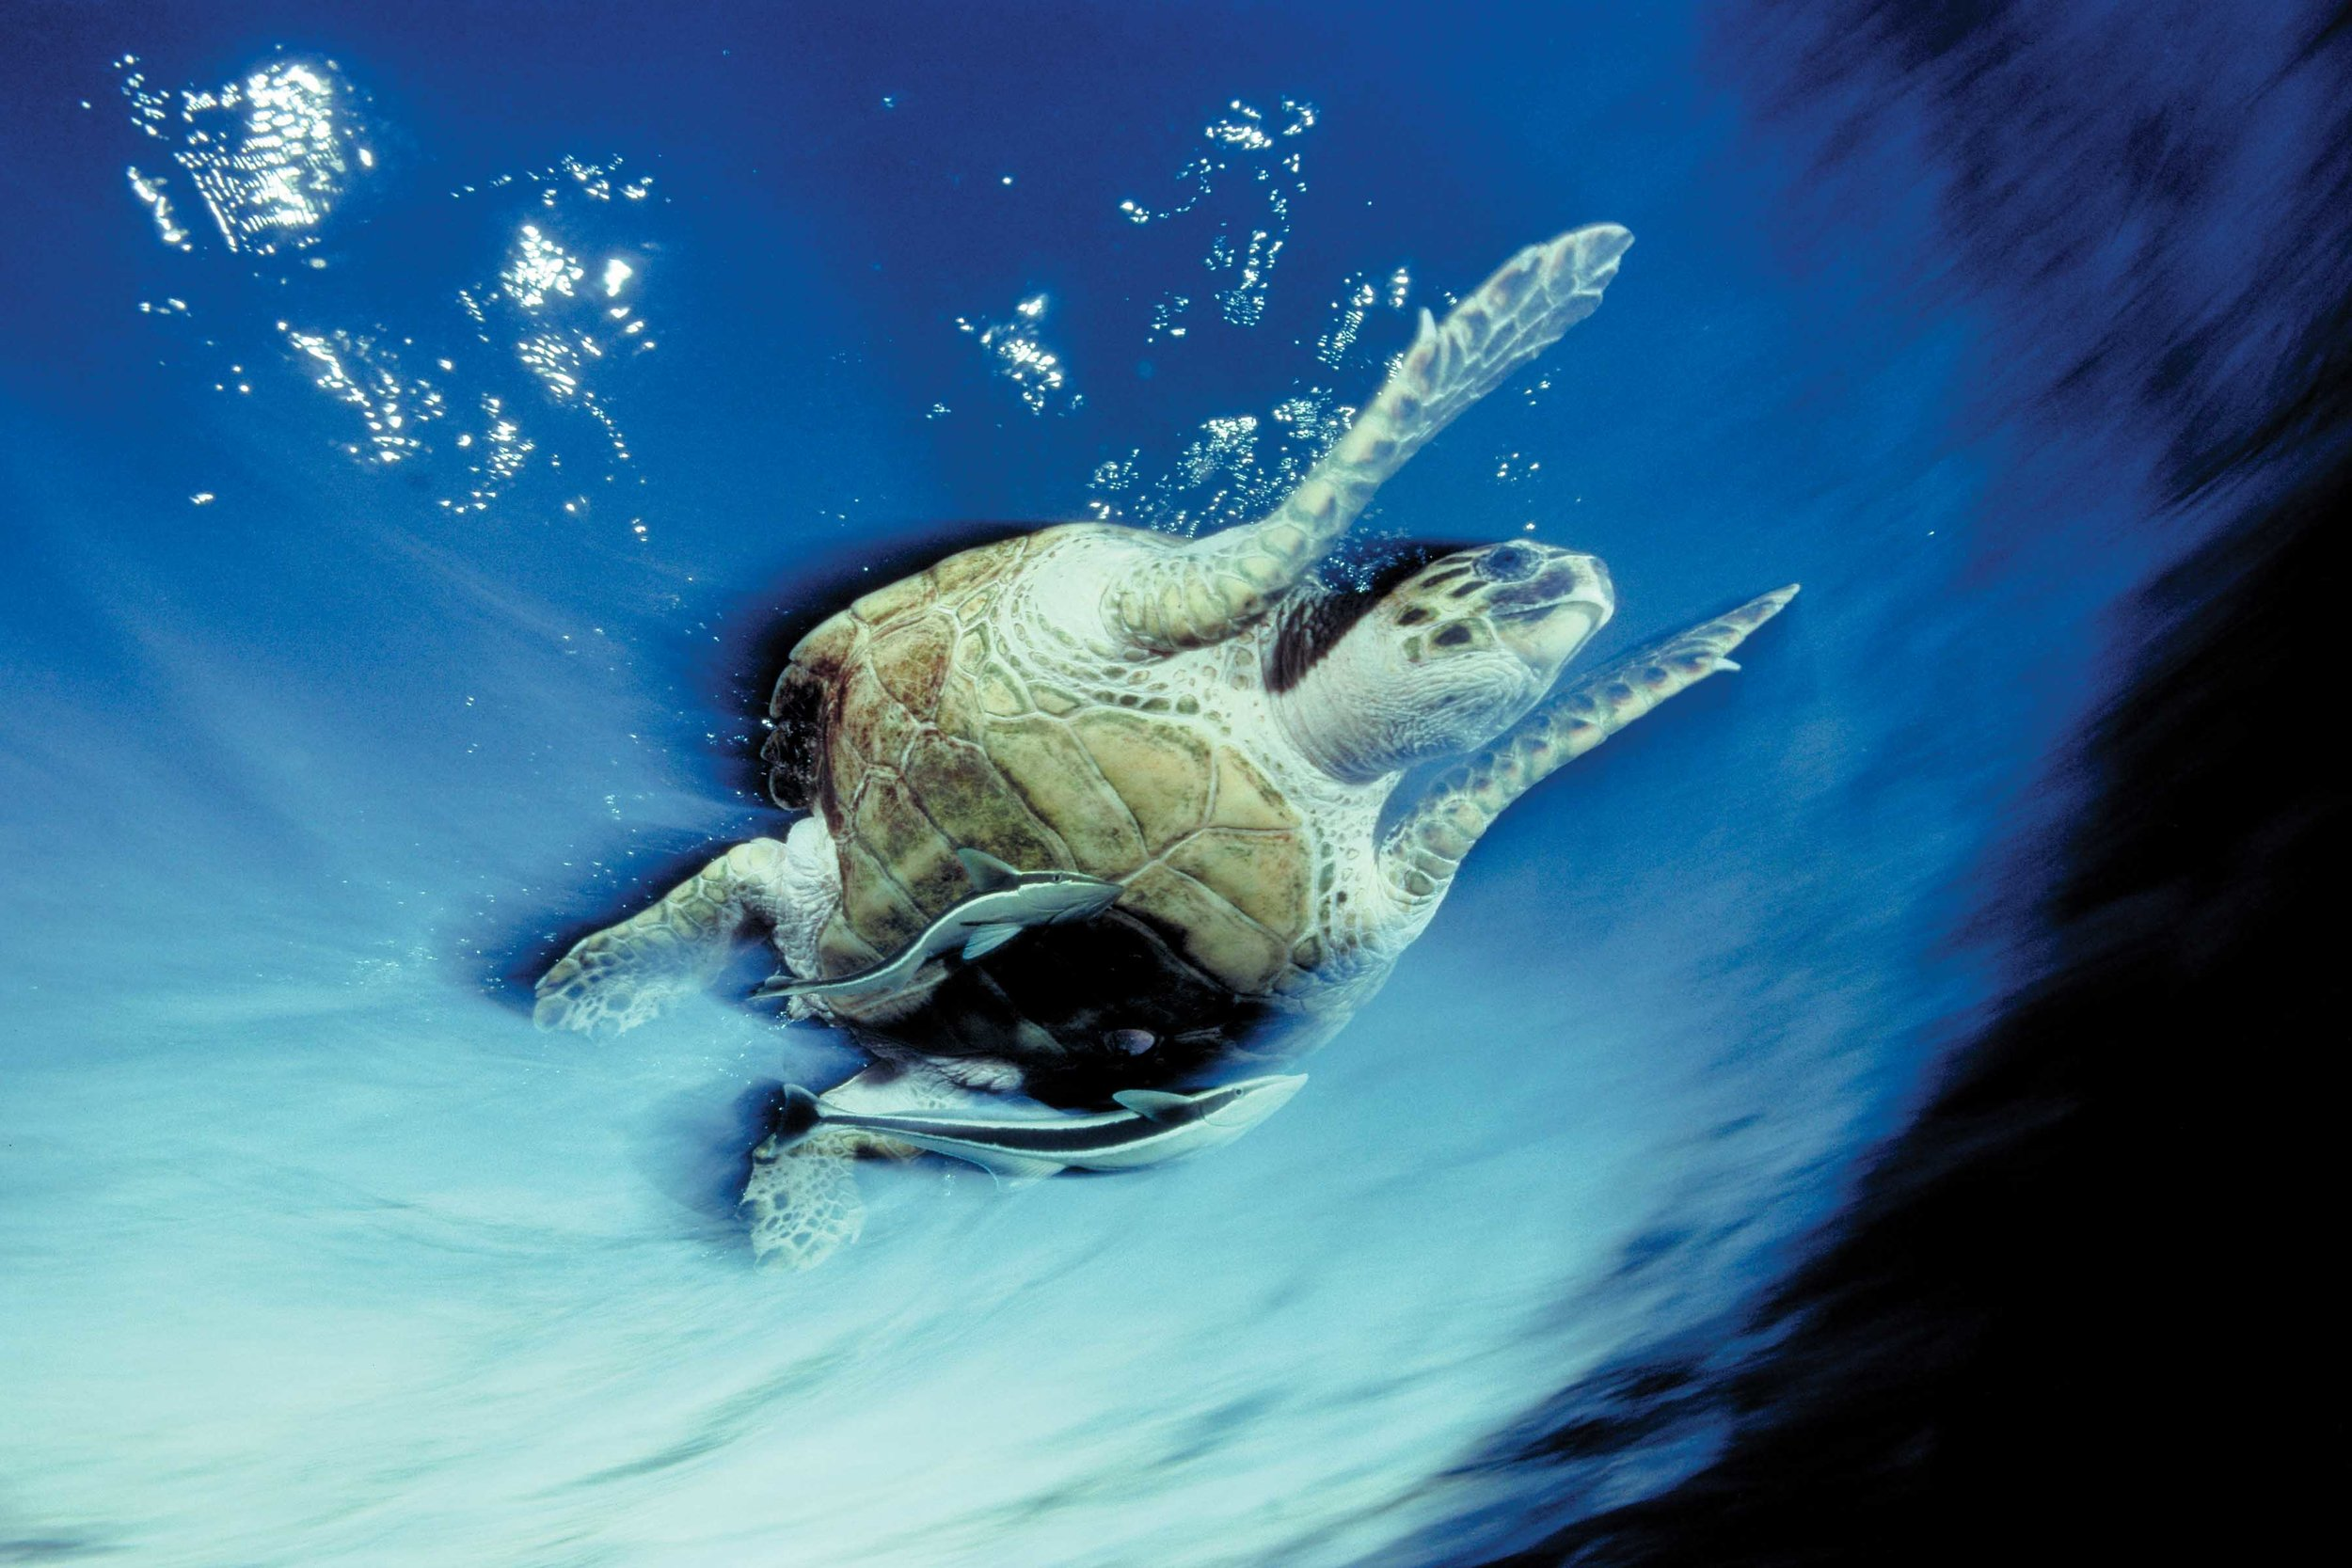 A hawksbill turtle propels itself through waters off the coast of Israel. © David Doubilet